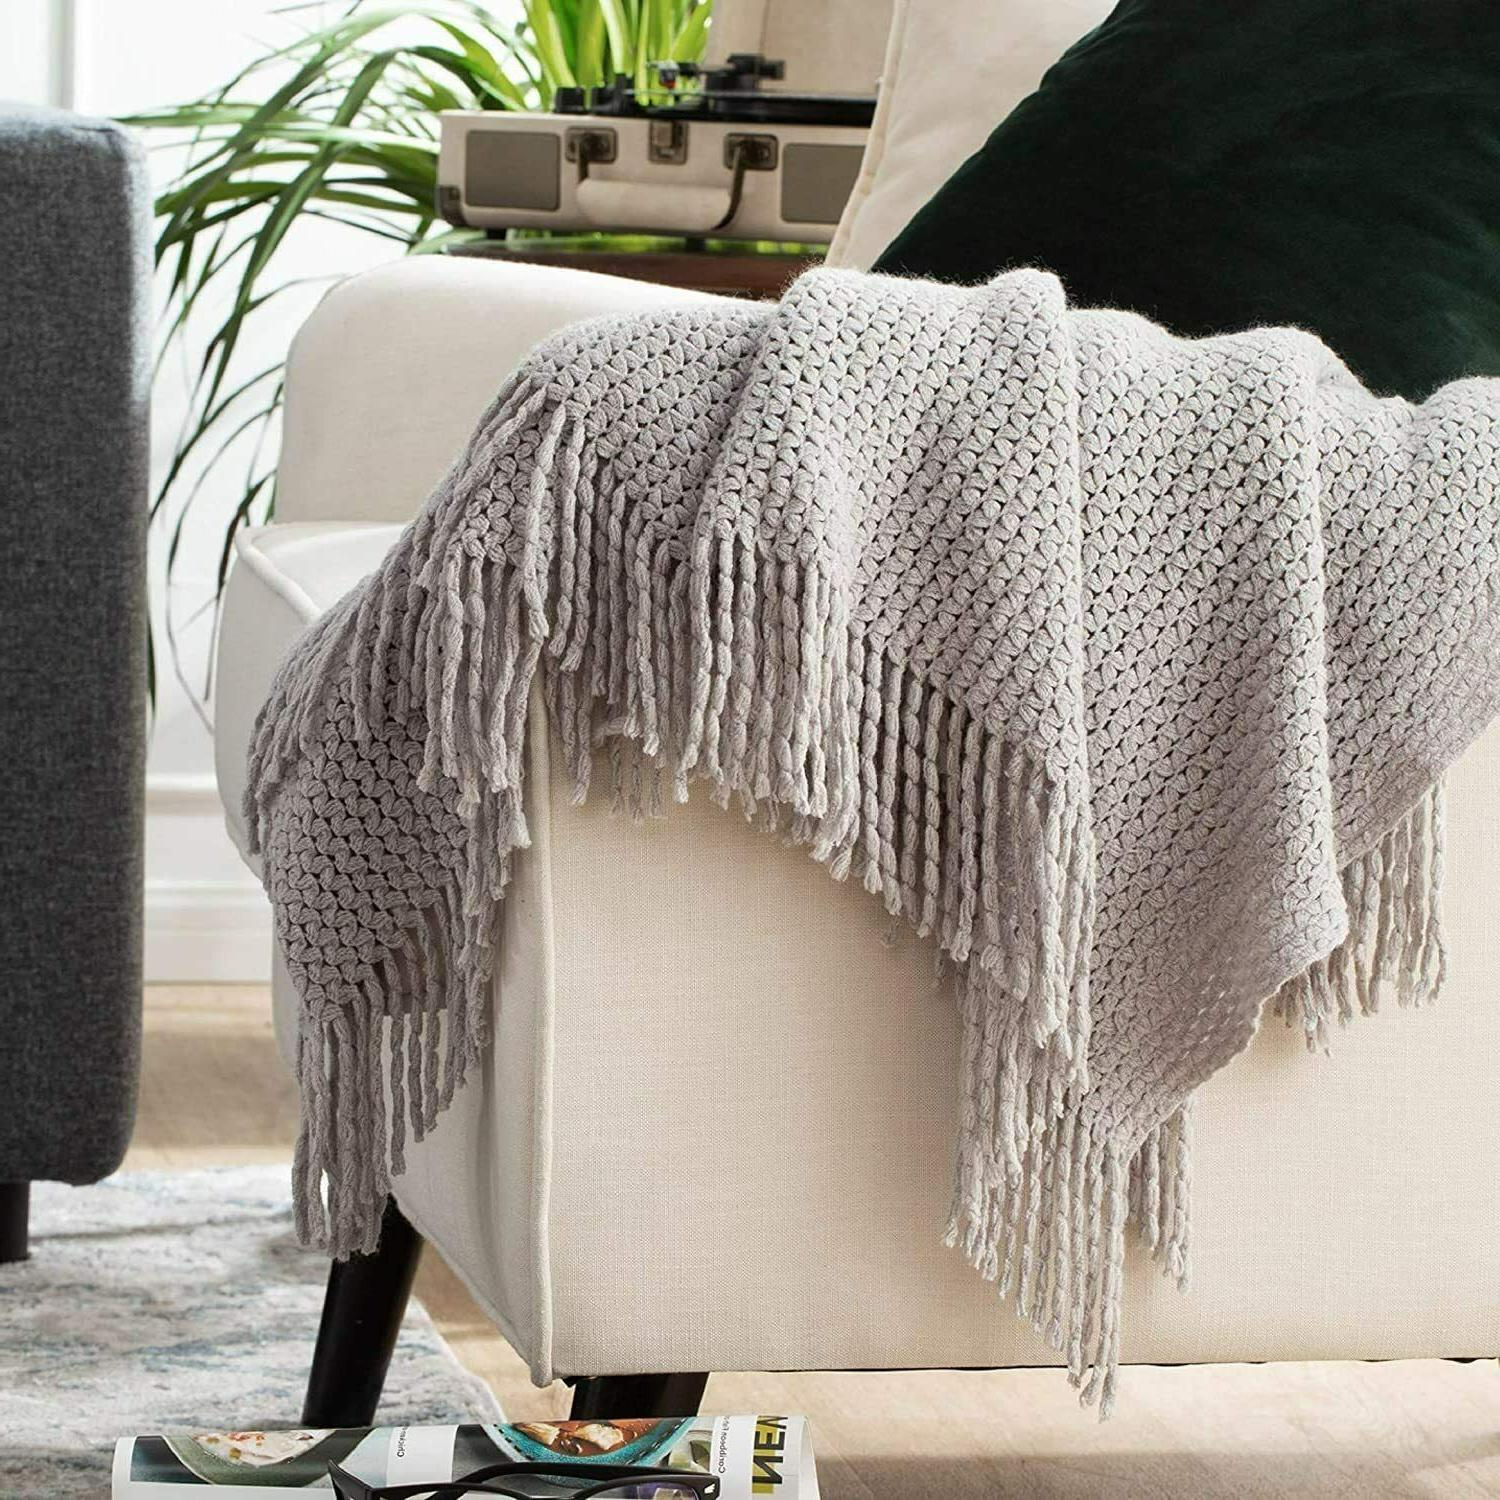 Bedsure Couch Soft Knit Blanket 50x60 Inch Lightwe...